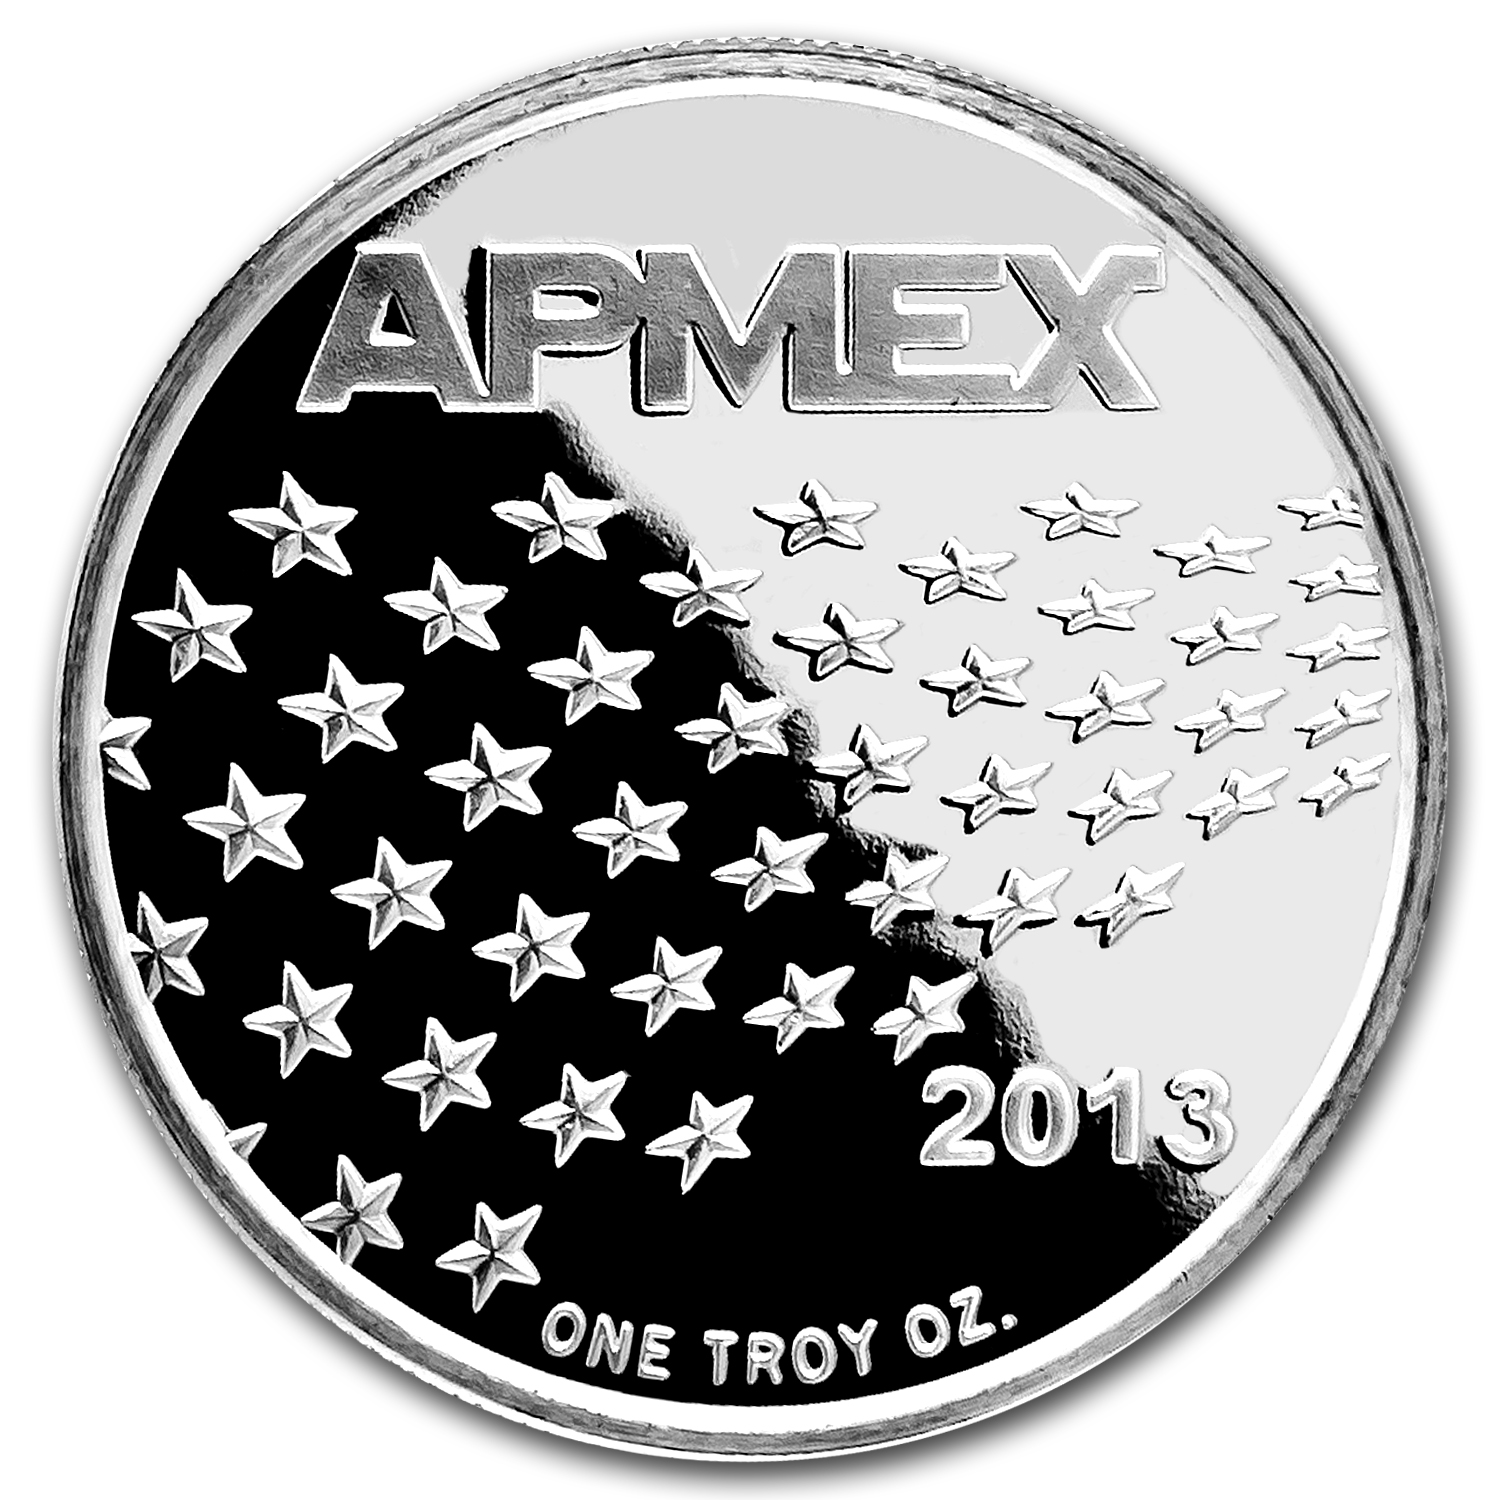 1 oz Silver Round - APMEX (2013 Star and Stripes)